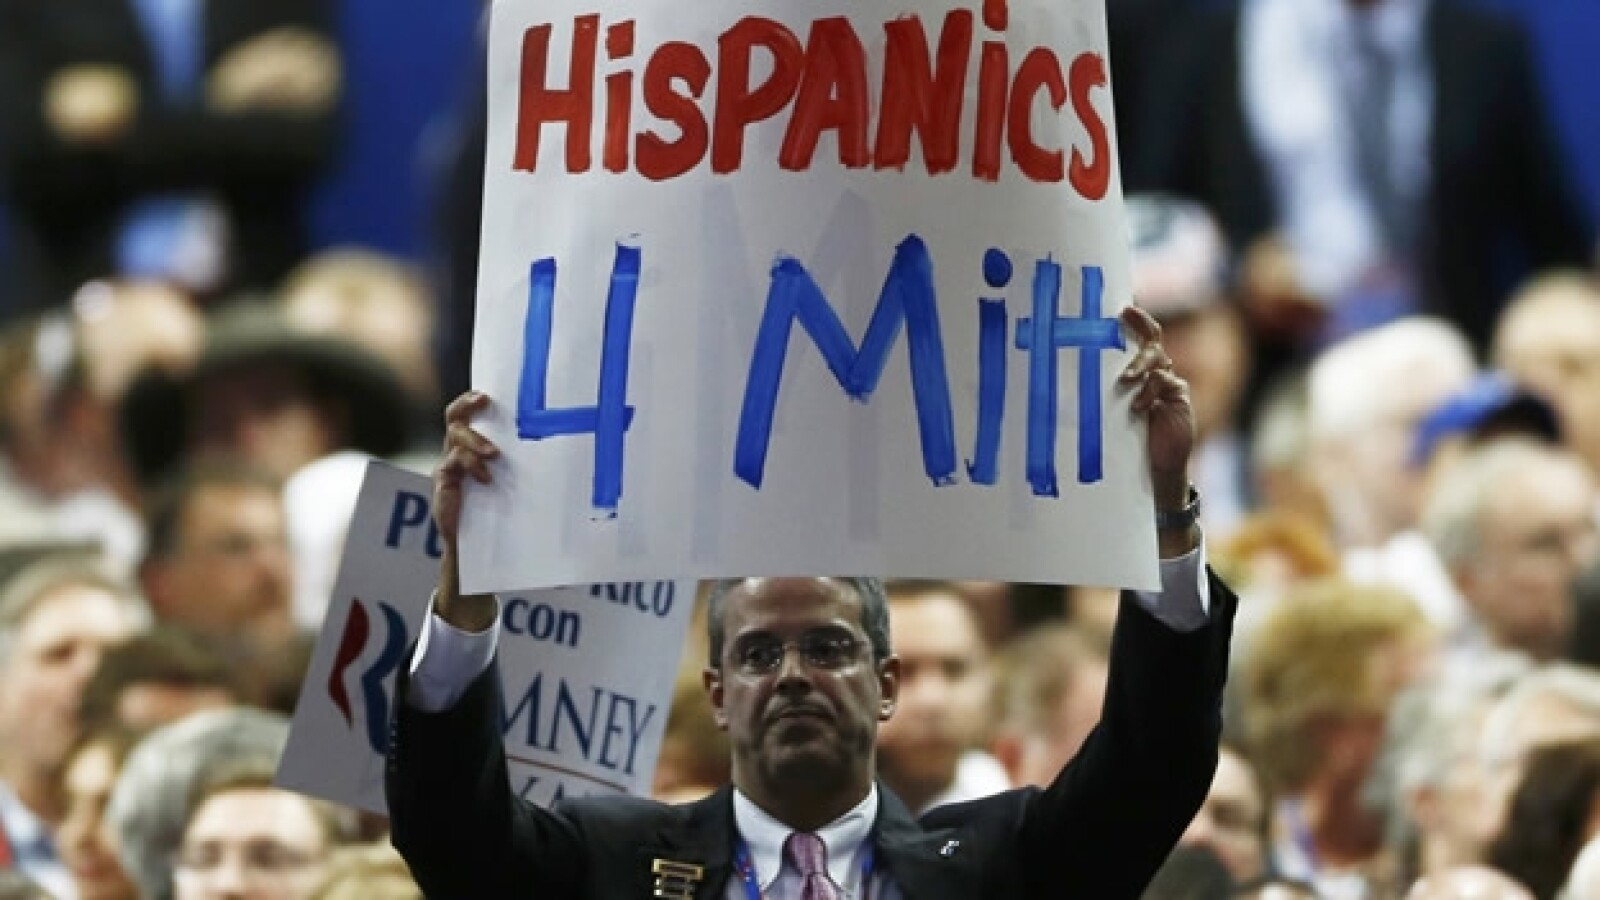 hispanos, apoyo mitt romney, convencion republicana